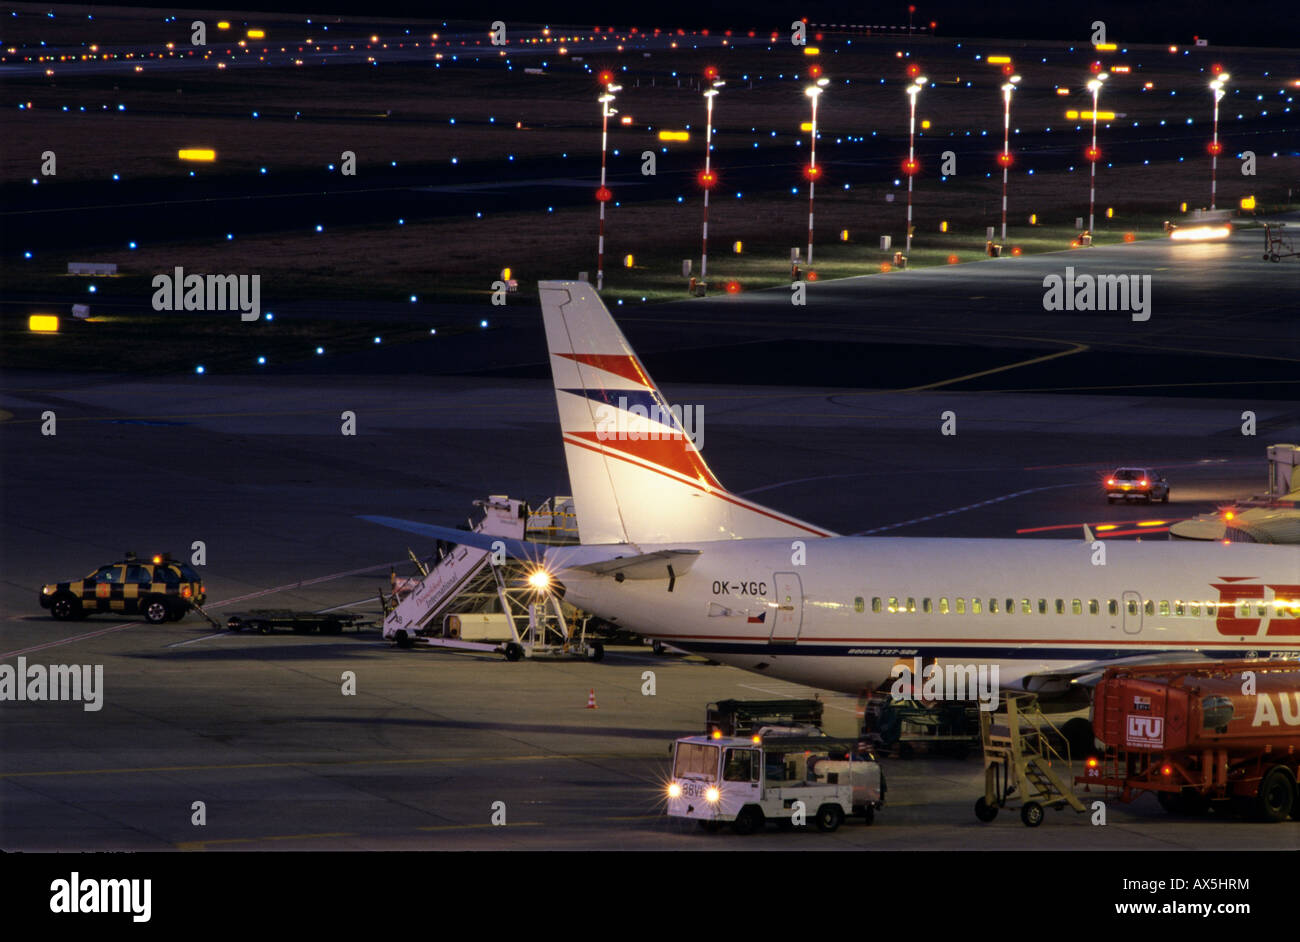 Airplane being repaired overnight - Stock Image